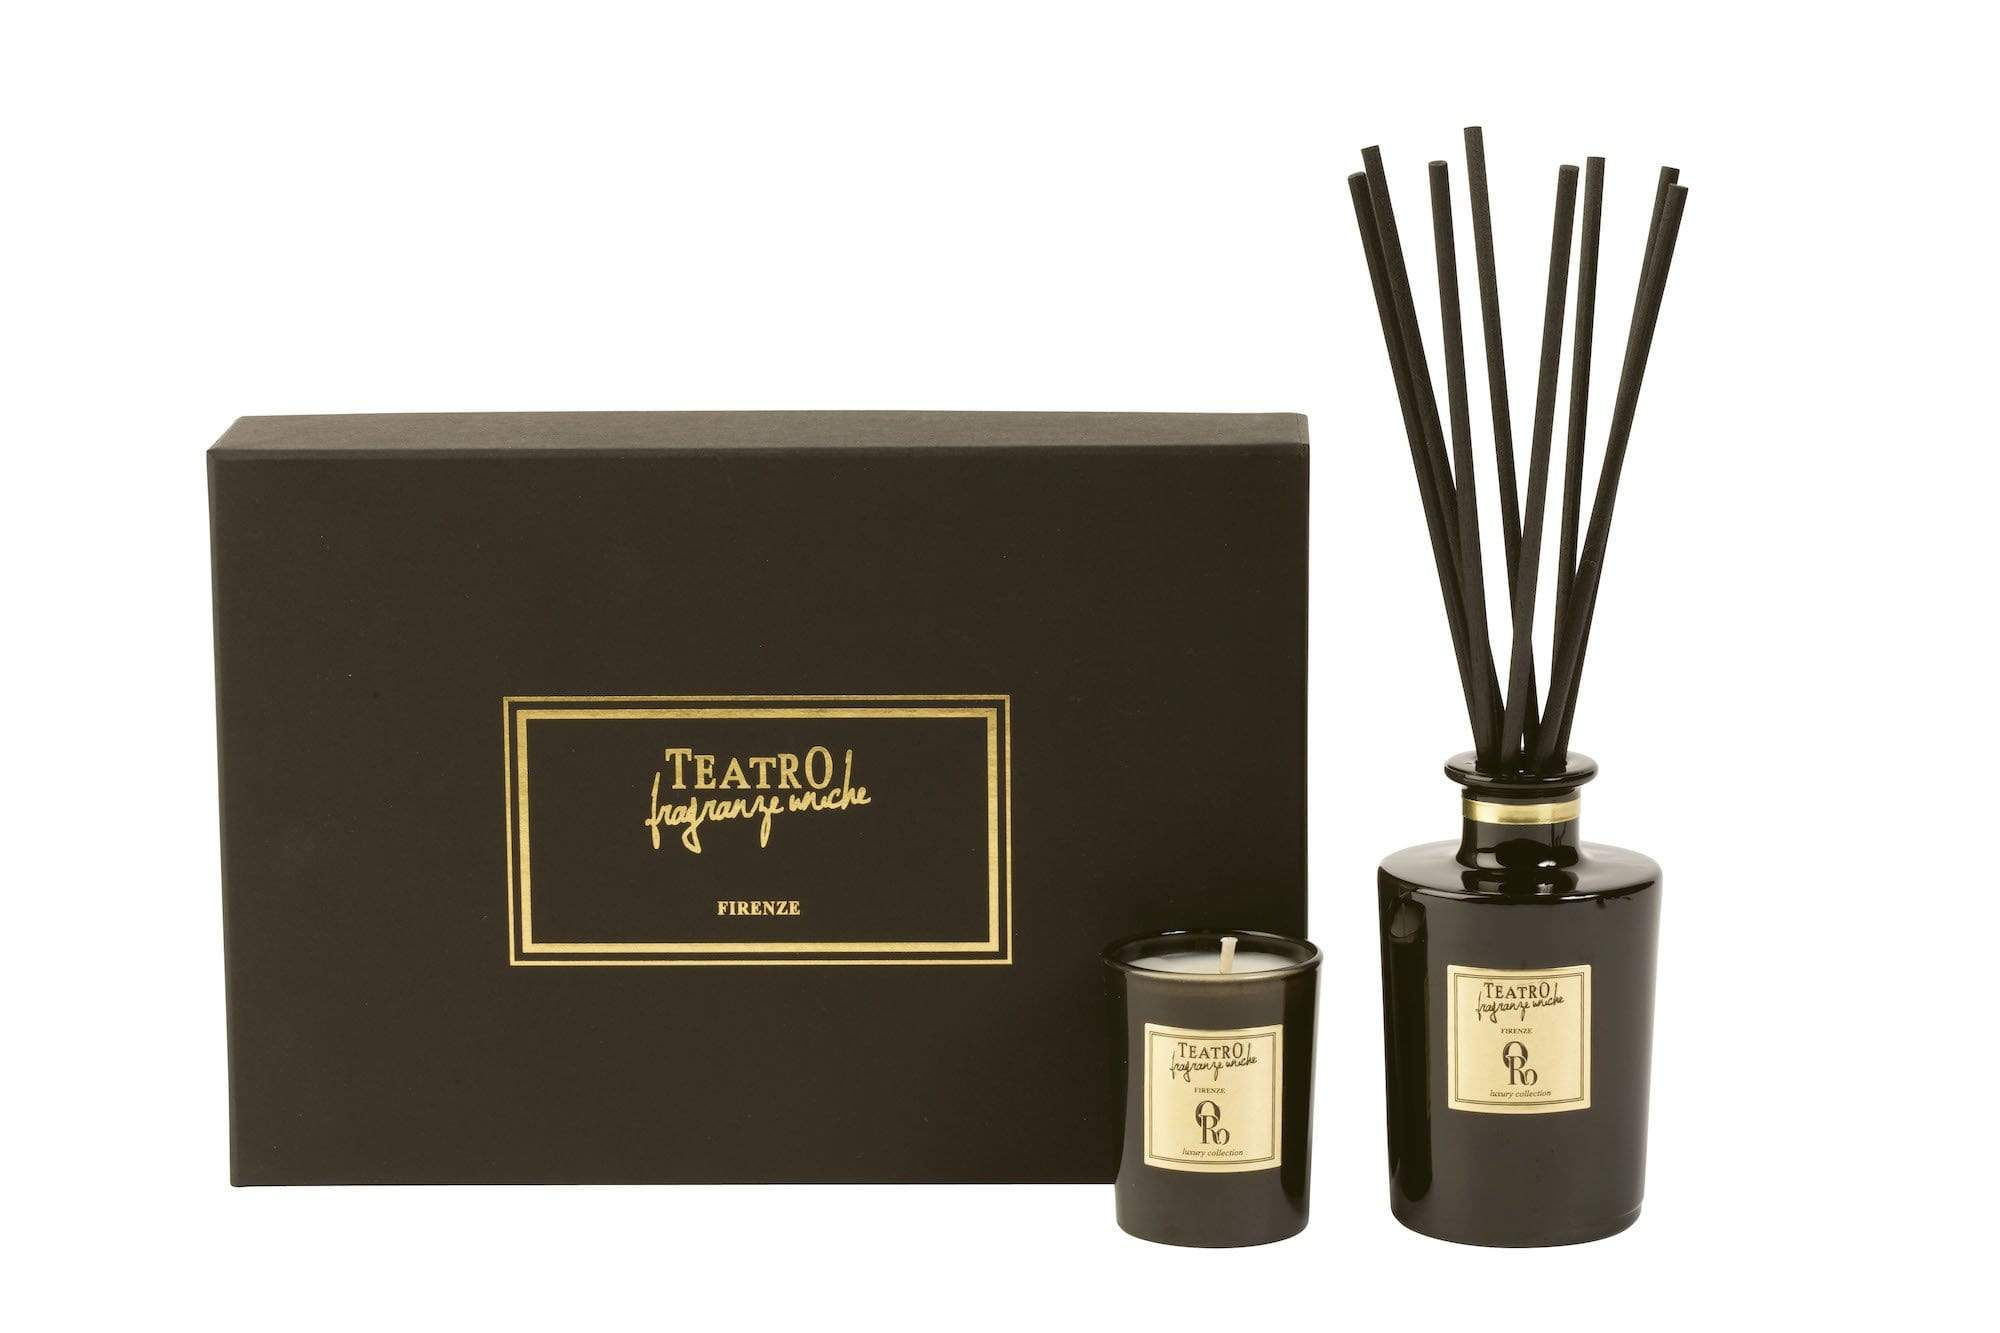 Oro Gift Box Diffuser & Candle (2 Sizes)